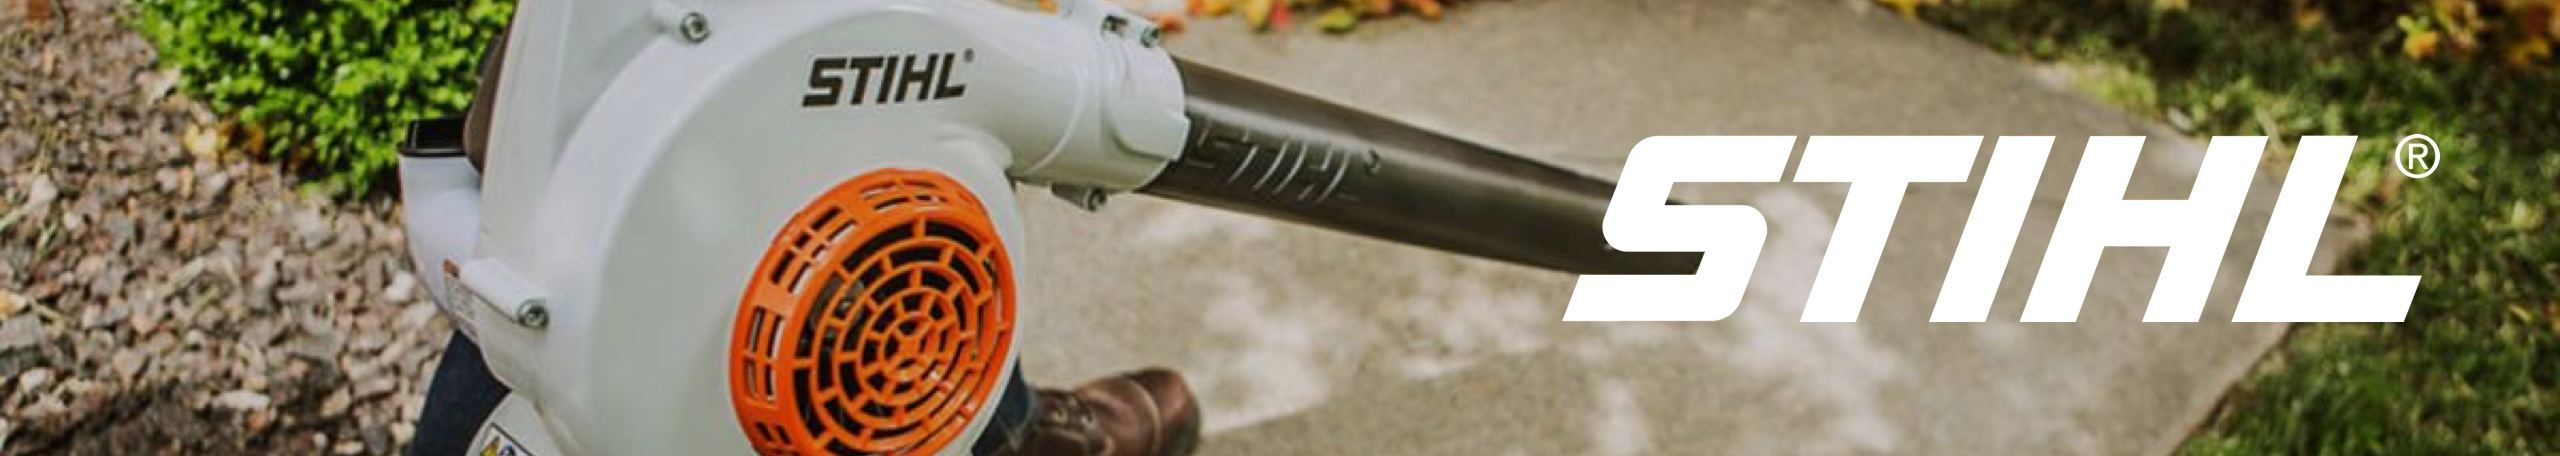 Stihl logo with leaf blower